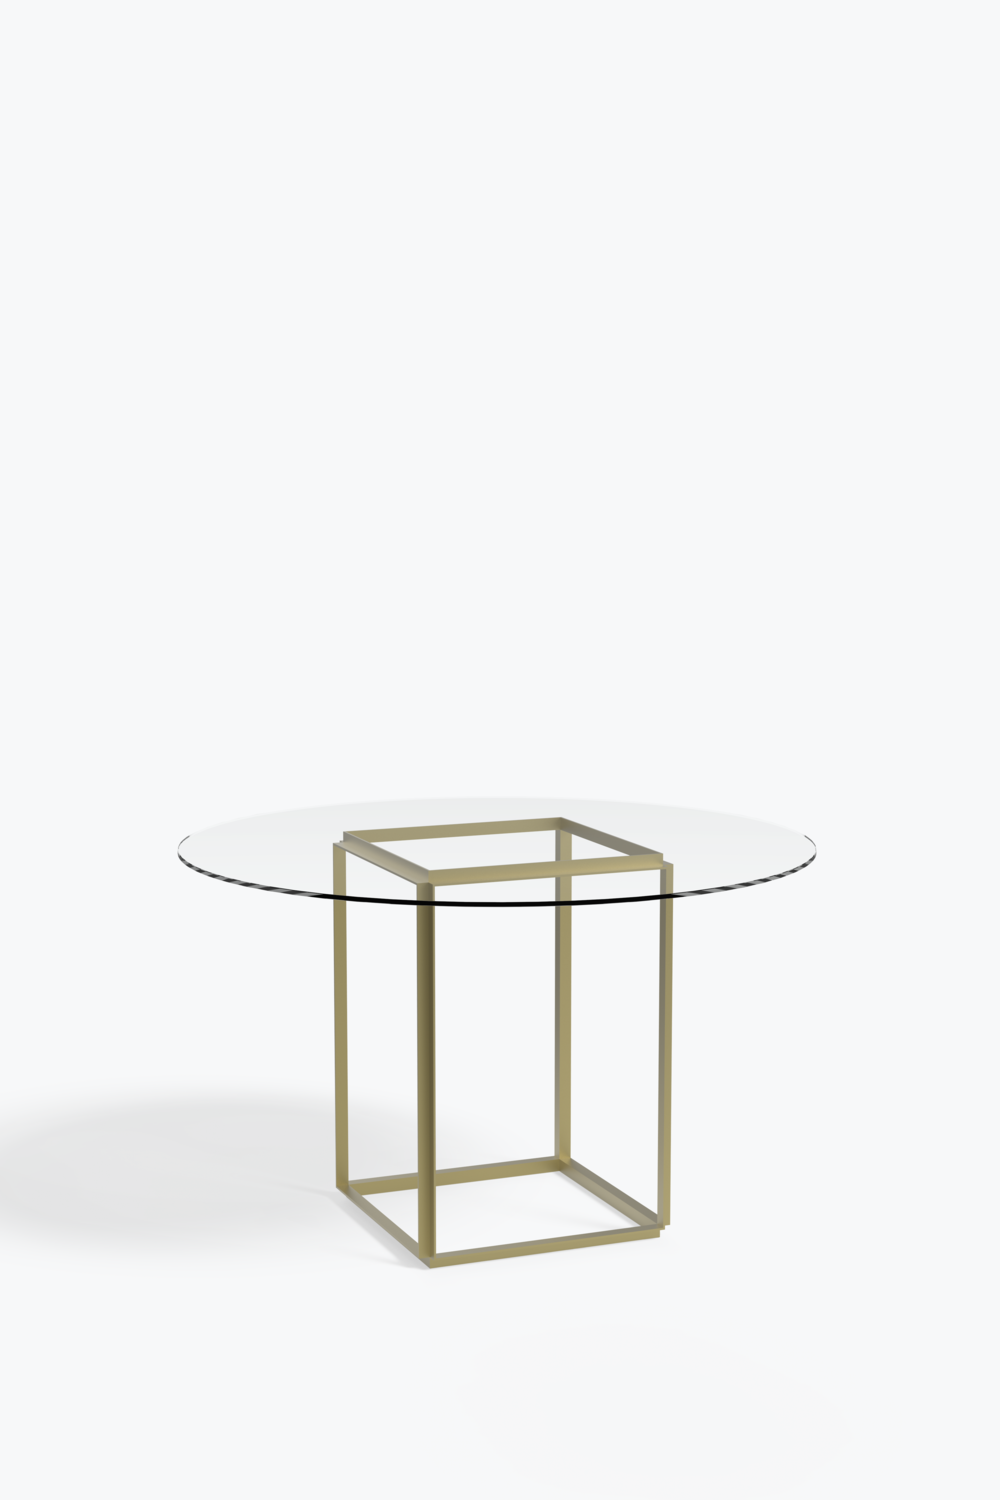 Florence dining table ø 120 cm raw gold frame w clear glass table top